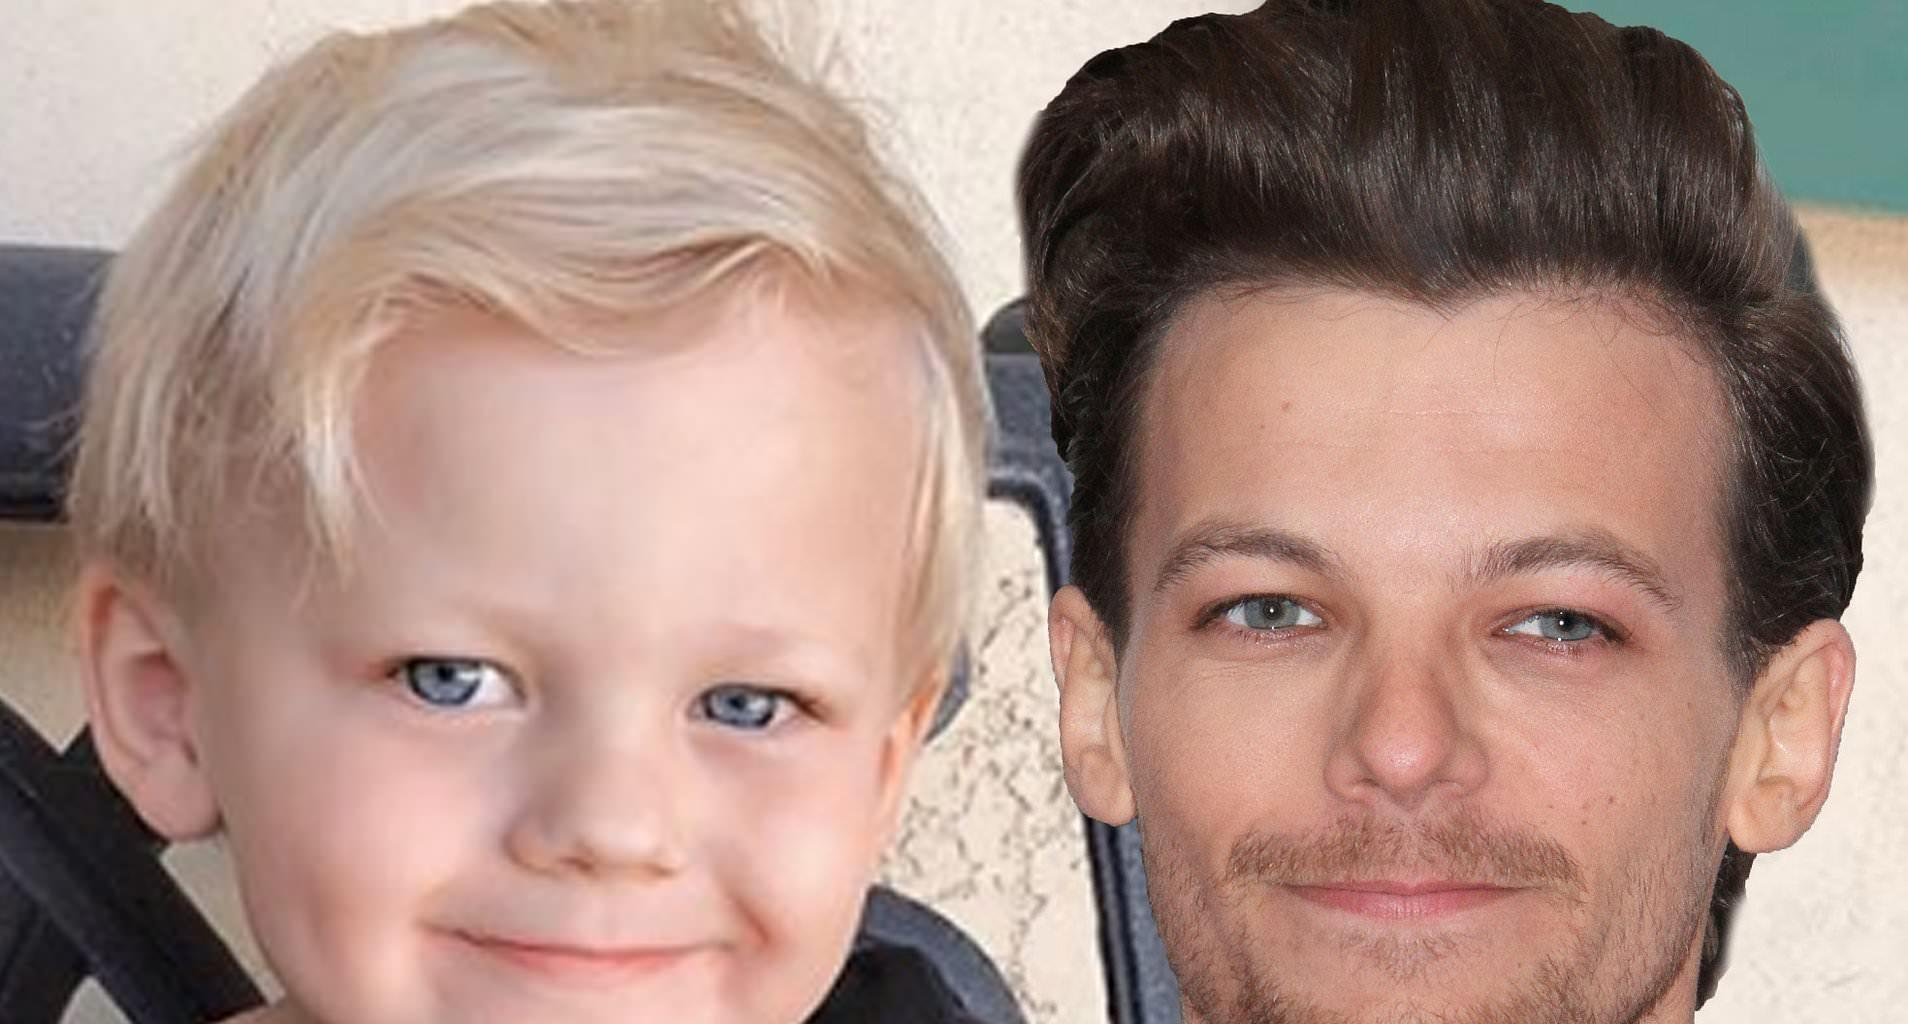 Louis Tomlinson's Son Looks Like His Spitting Image In Rare Pic Posted By His Mom On His 4th Birthday!